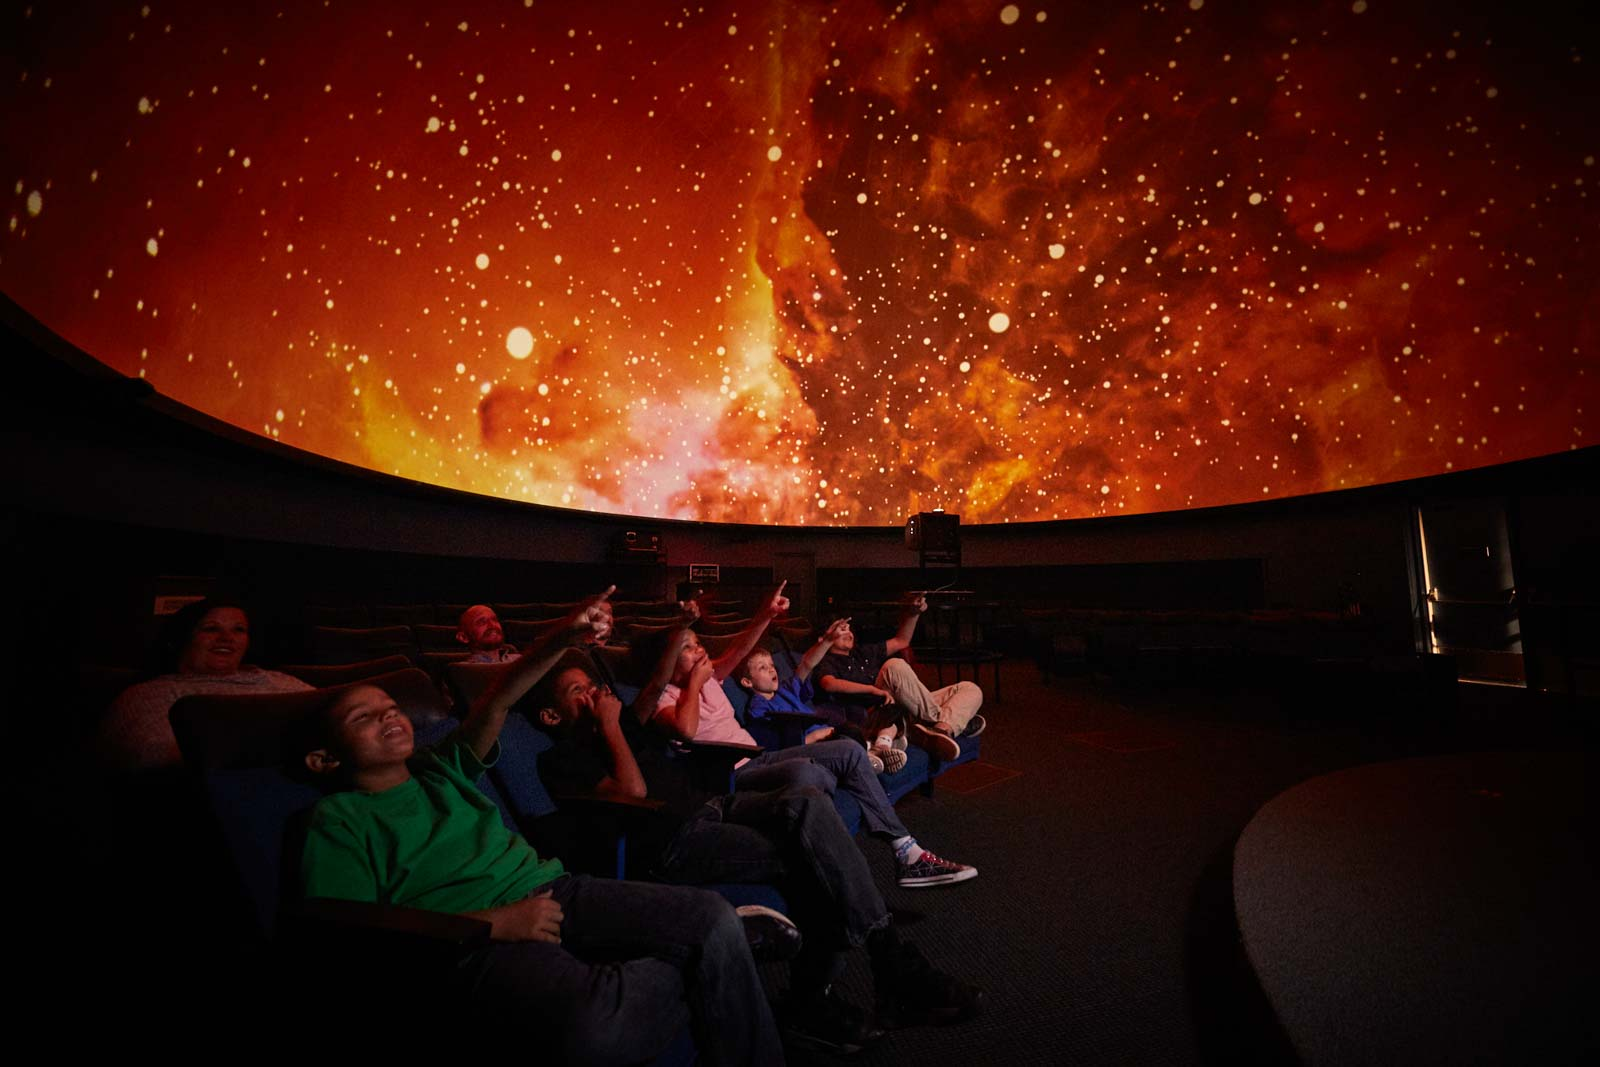 Kids in planetarium